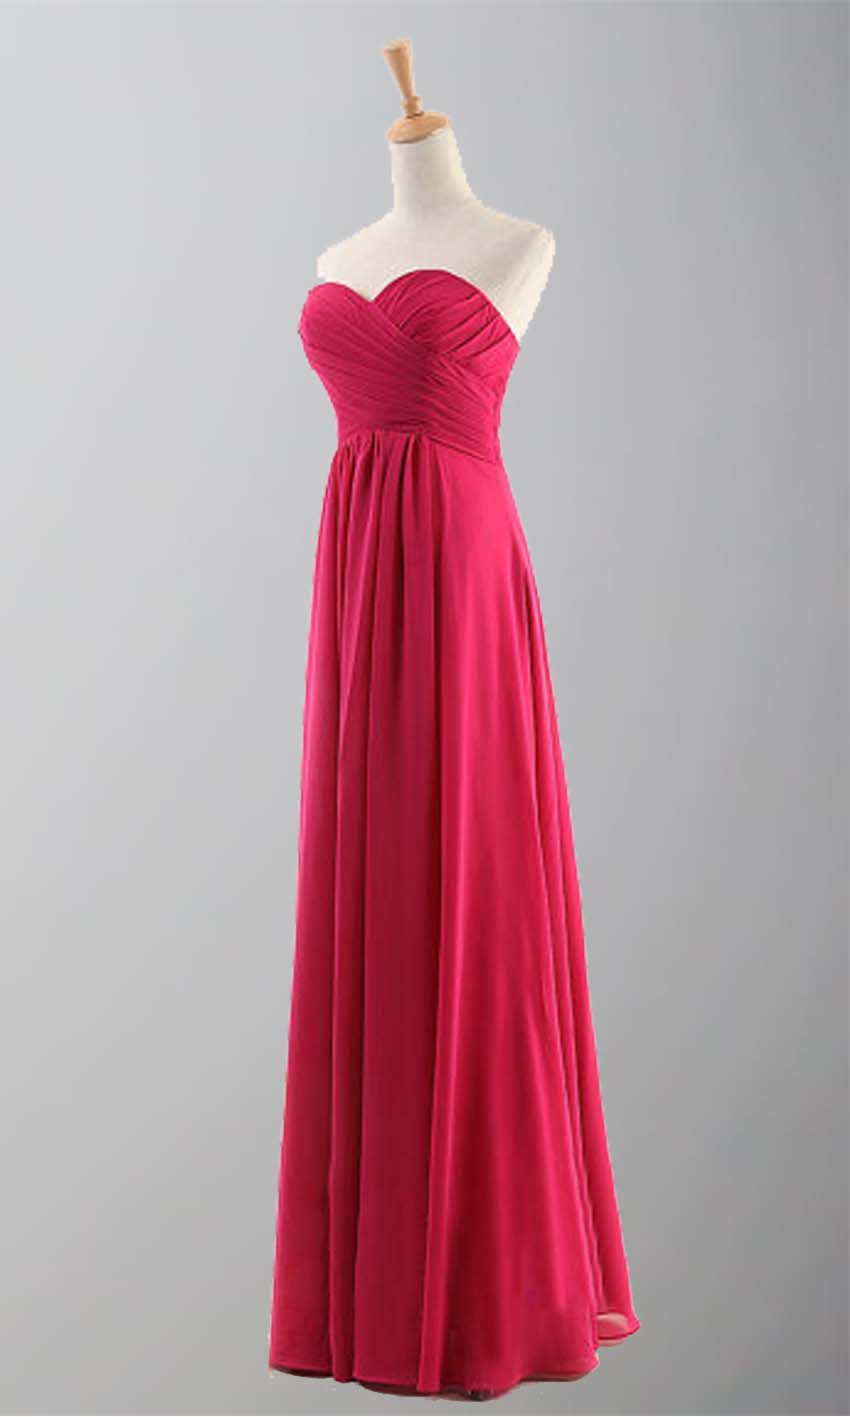 Flame Sweetheart Empire Waist Long Prom Dresses KSP172 [KSP172] - £84.00 : Cheap Prom Dresses Uk, Bridesmaid Dresses, 2014 Prom & Evening Dresses, Look for cheap elegant prom dresses 2014, cocktail gowns, or dresses for special occasions? kissprom.co.uk offers various bridesmaid dresses, evening dress, free shipping to UK etc.